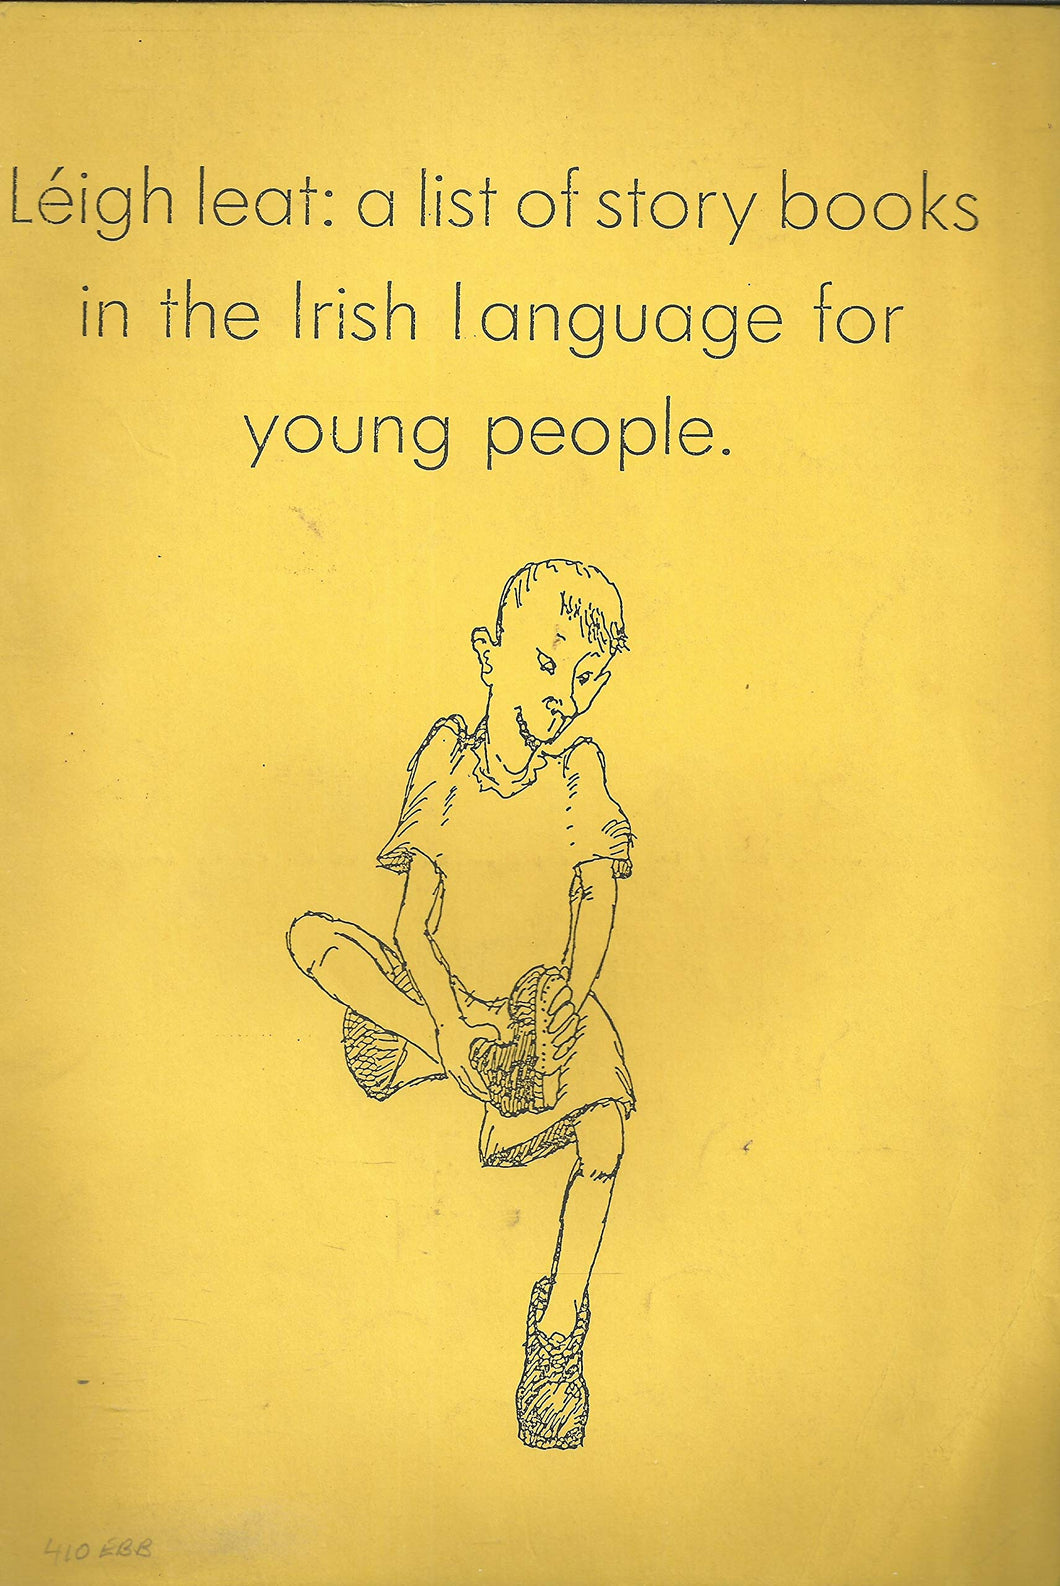 Léigh leat: A list of story books in the Irish language for young people